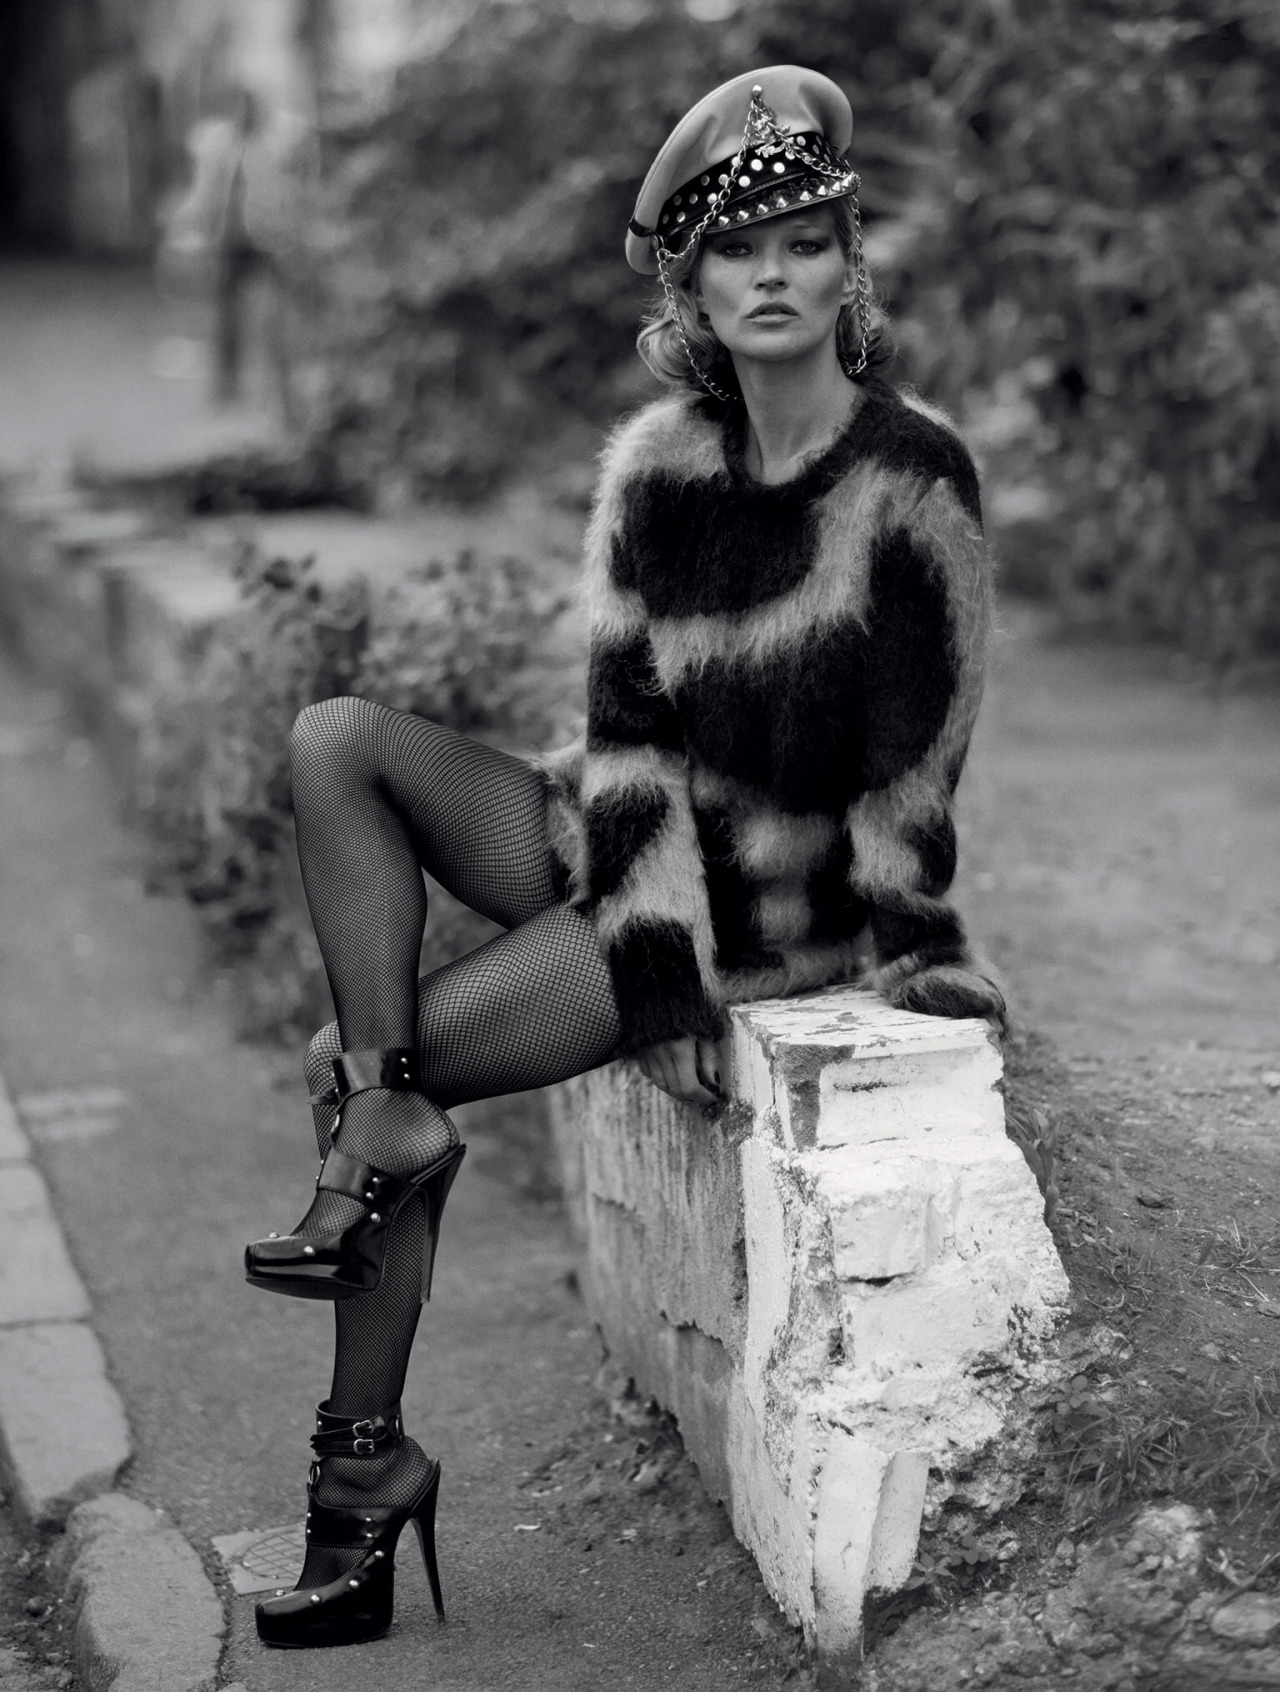 kate-moss-by-ethan-james-green-9